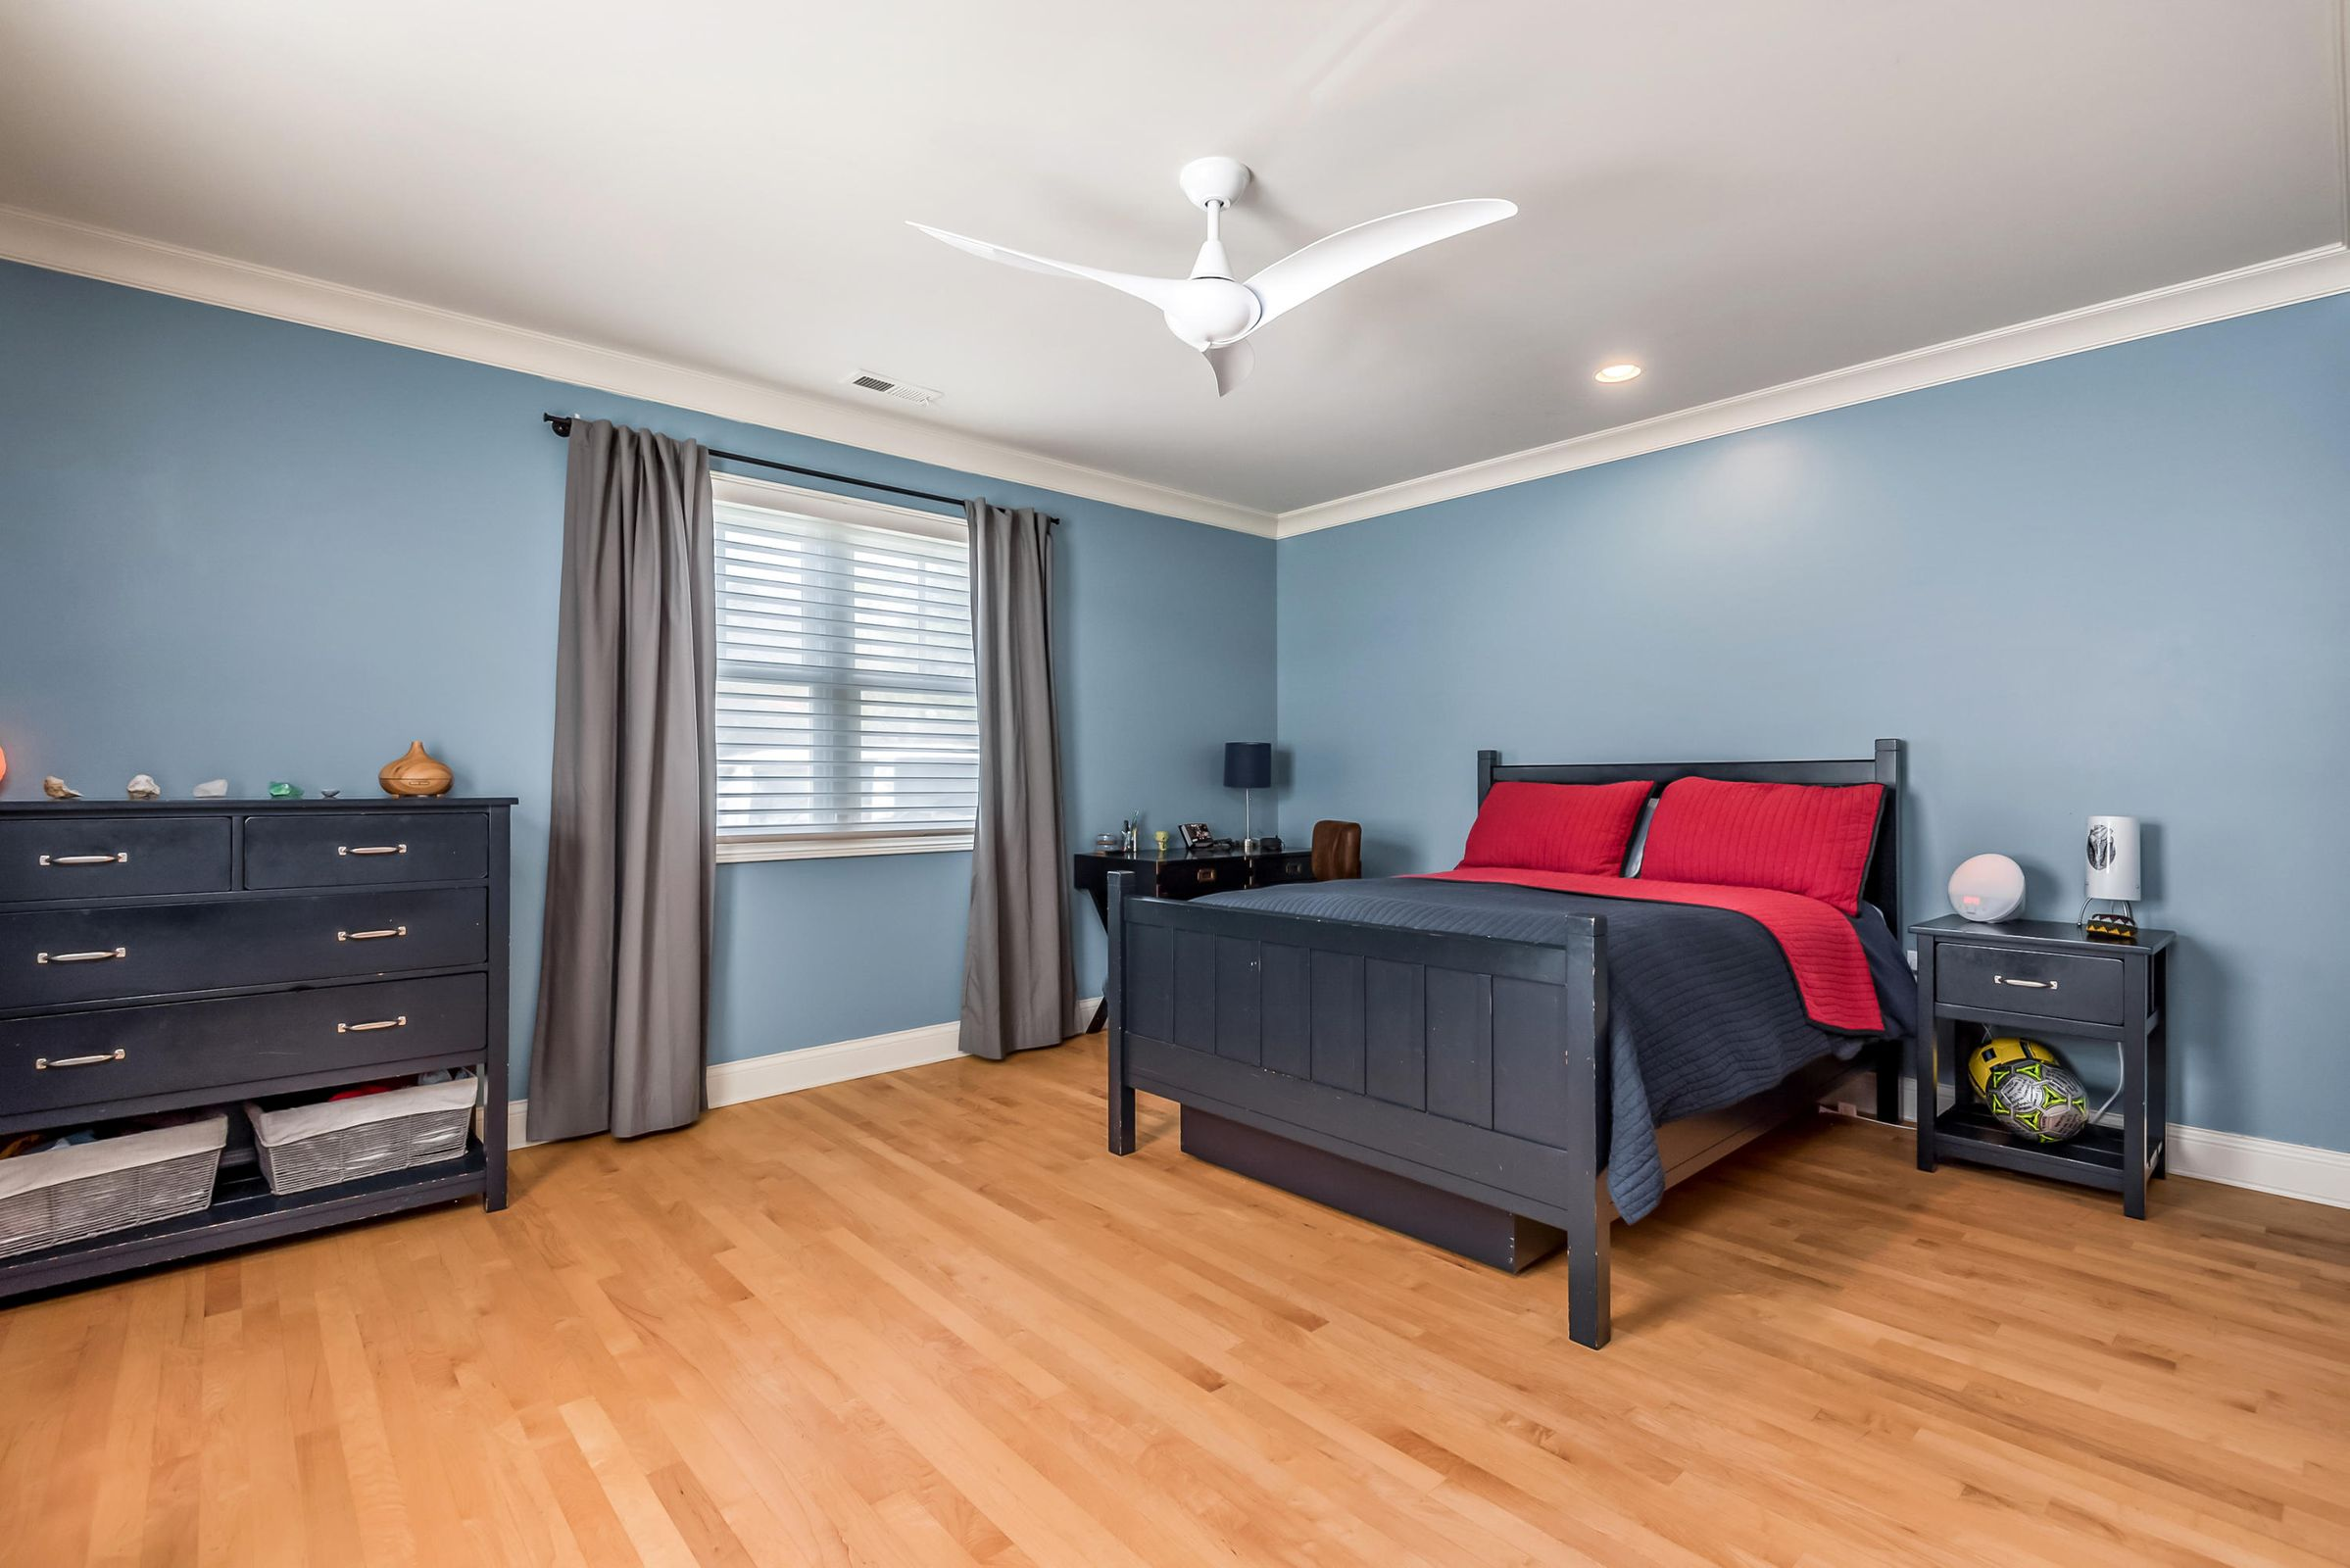 6612StoneMill Bed 3